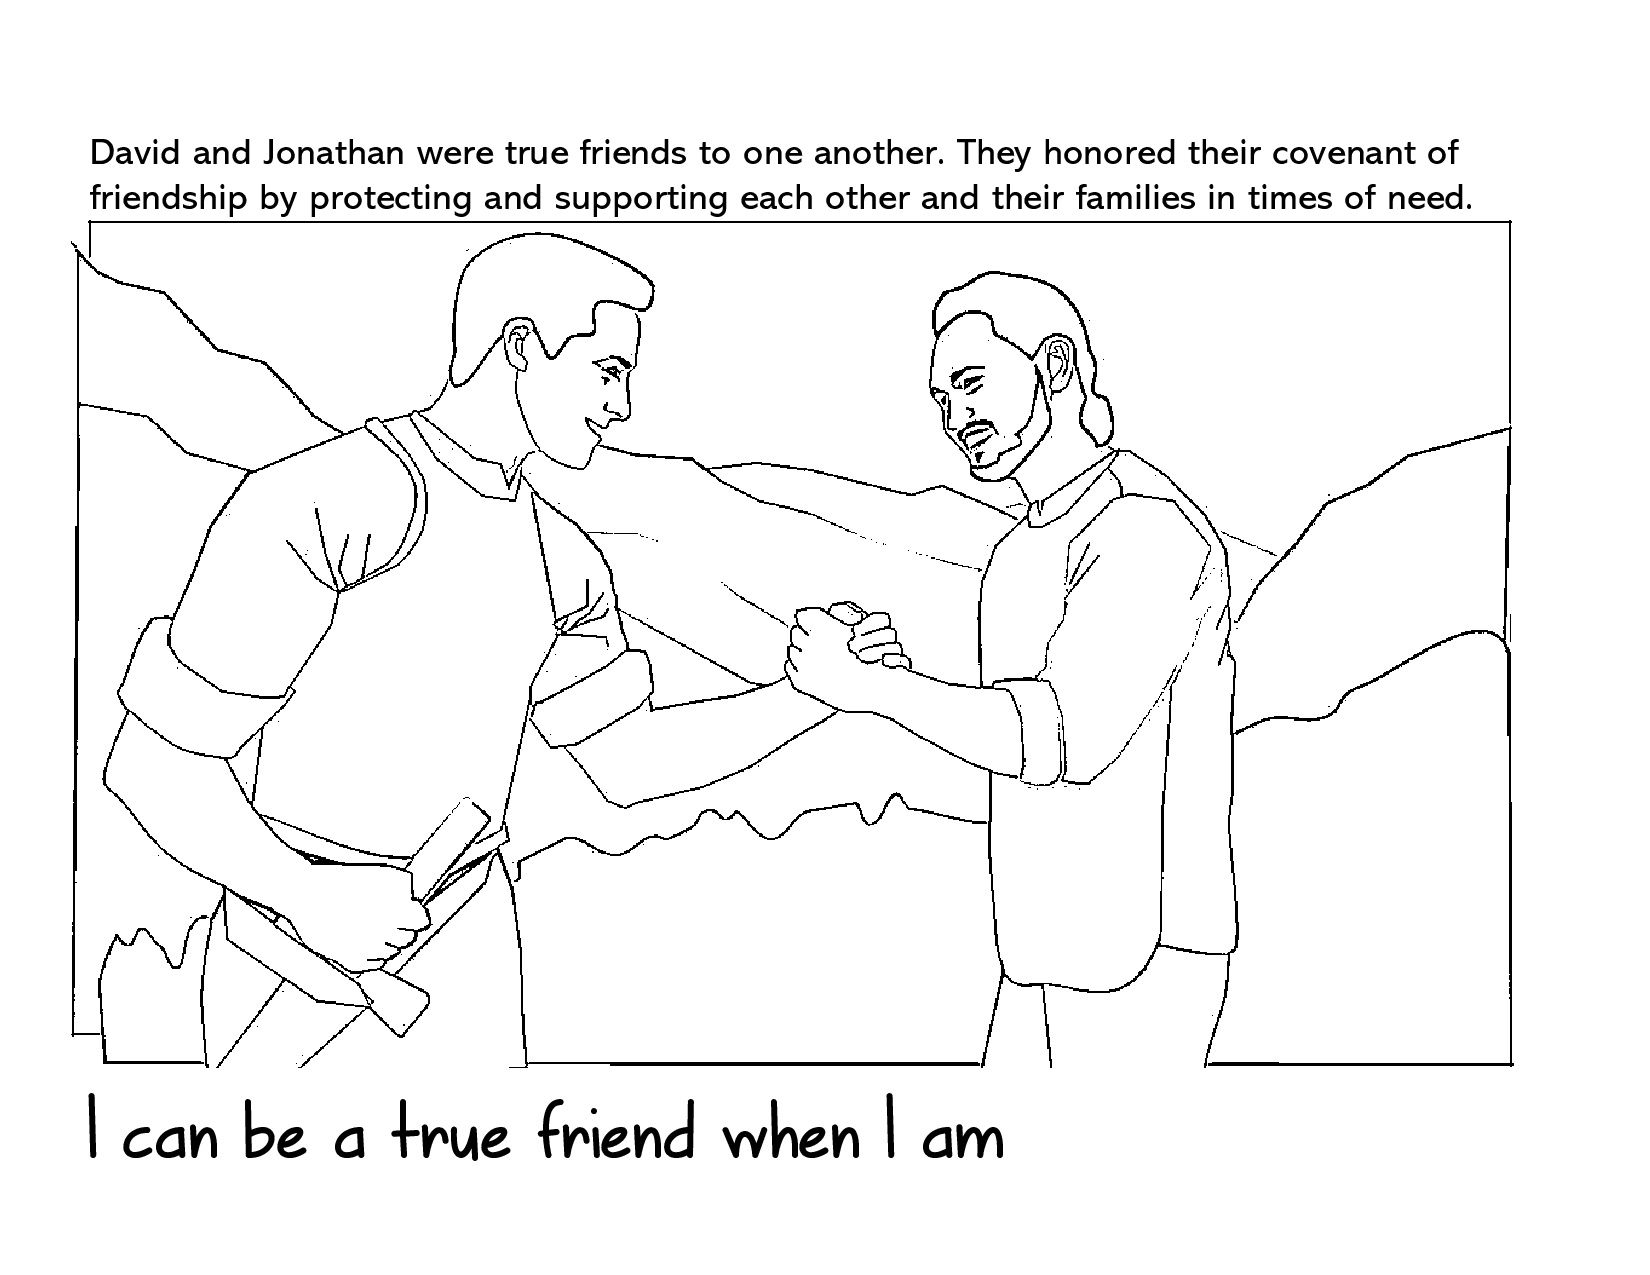 Primary 6 Lesson 29 David And Jonathan Coloring Page